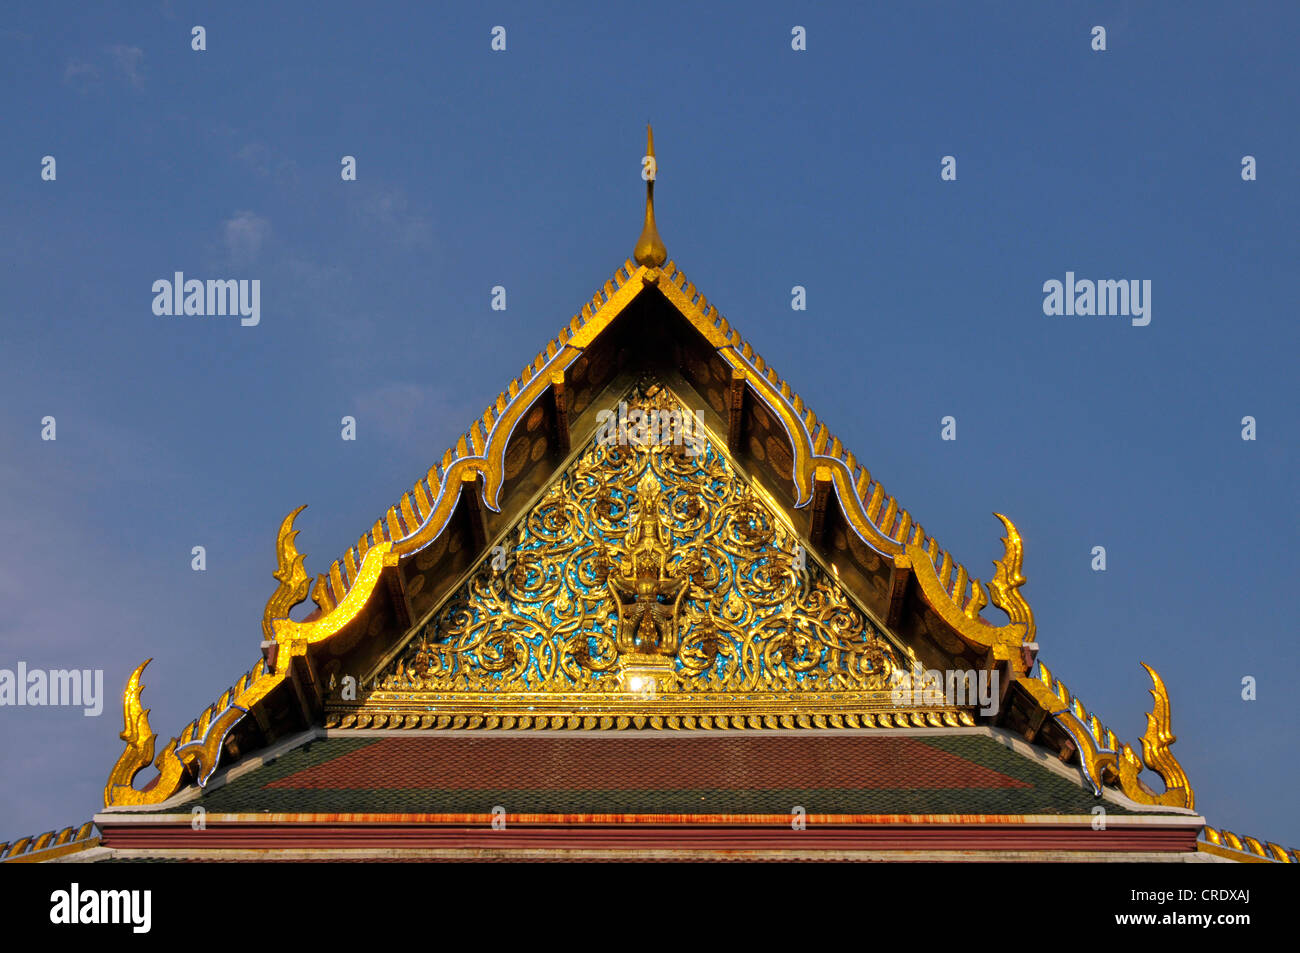 Pediment with Garuda and Nagas, Chofahs, sky tassel, characteristic architectural ornaments on the roof of Buddhist - Stock Image